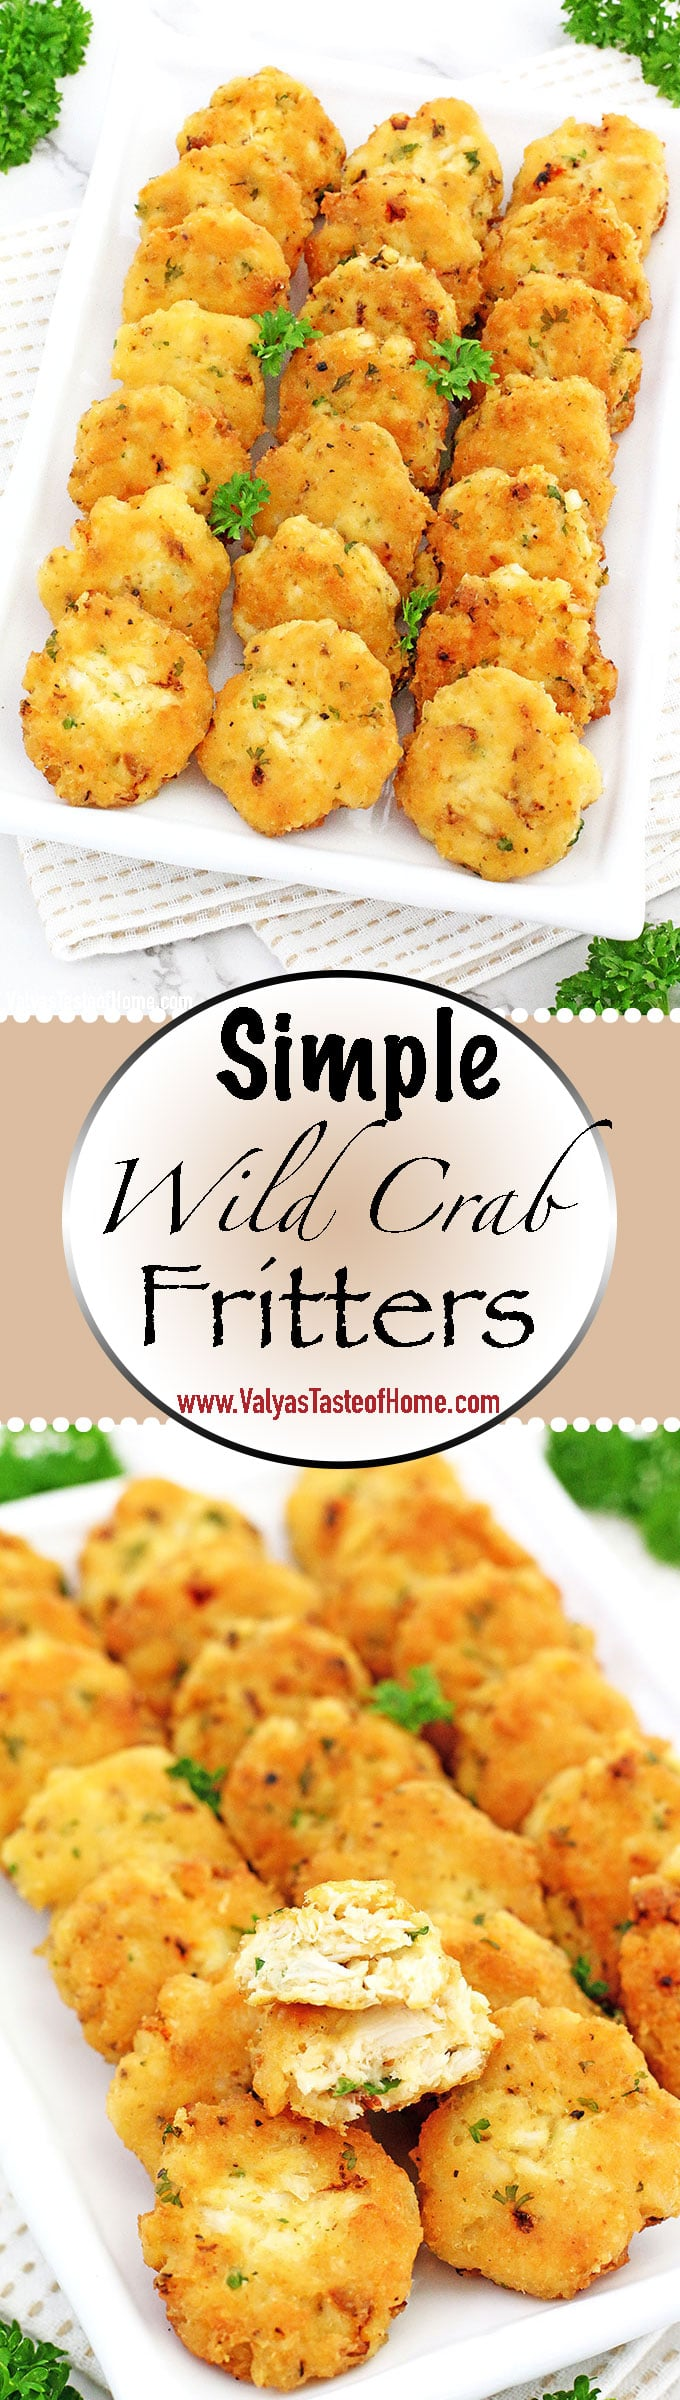 The name says it all! If you like easy recipes then this Simple Wild Crab Fritters Recipe is for you. The most scrumptious crab cakes you can taste. Crisp on the inside, tender and juicy on the inside and the flavors are absolutely incredible.